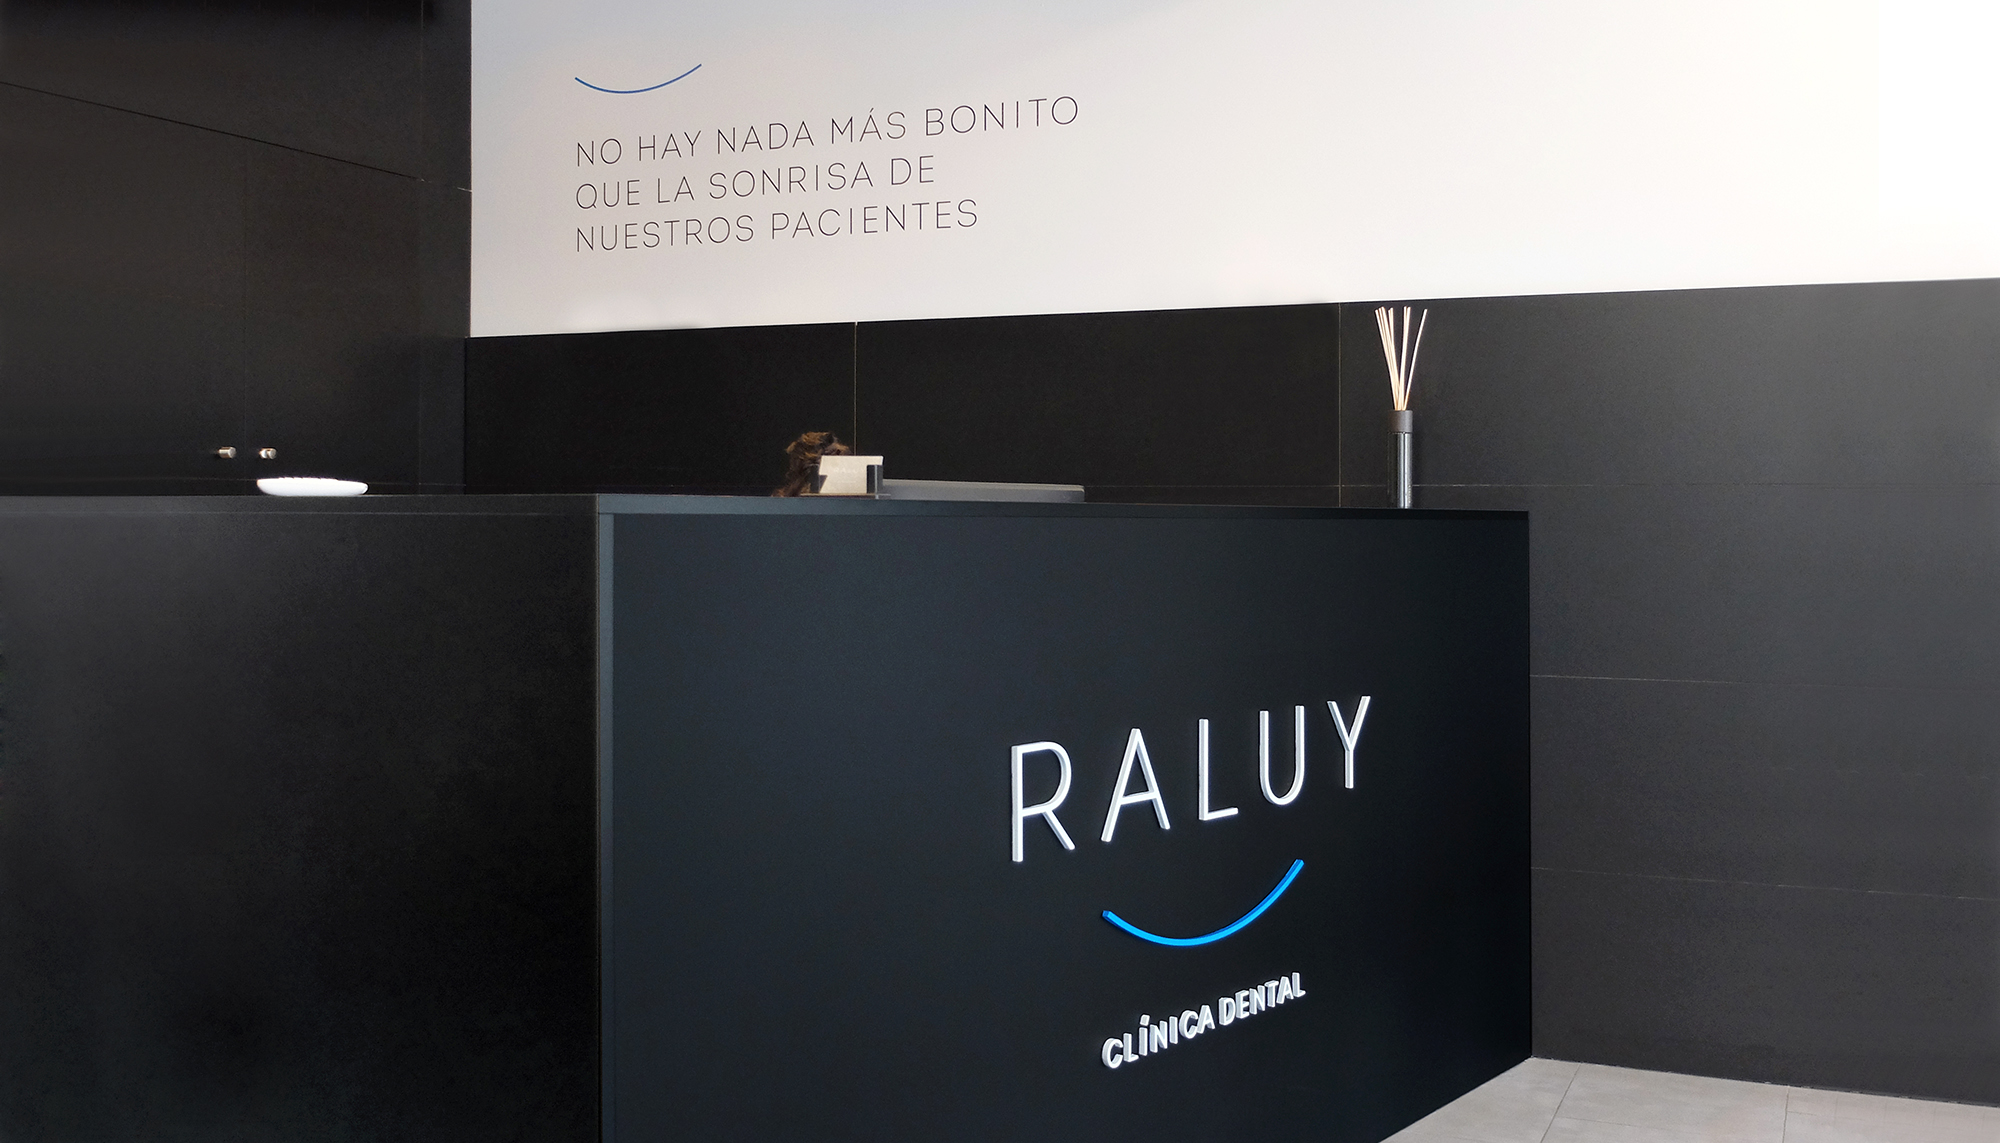 Rotulación Clínica Dental Raluy